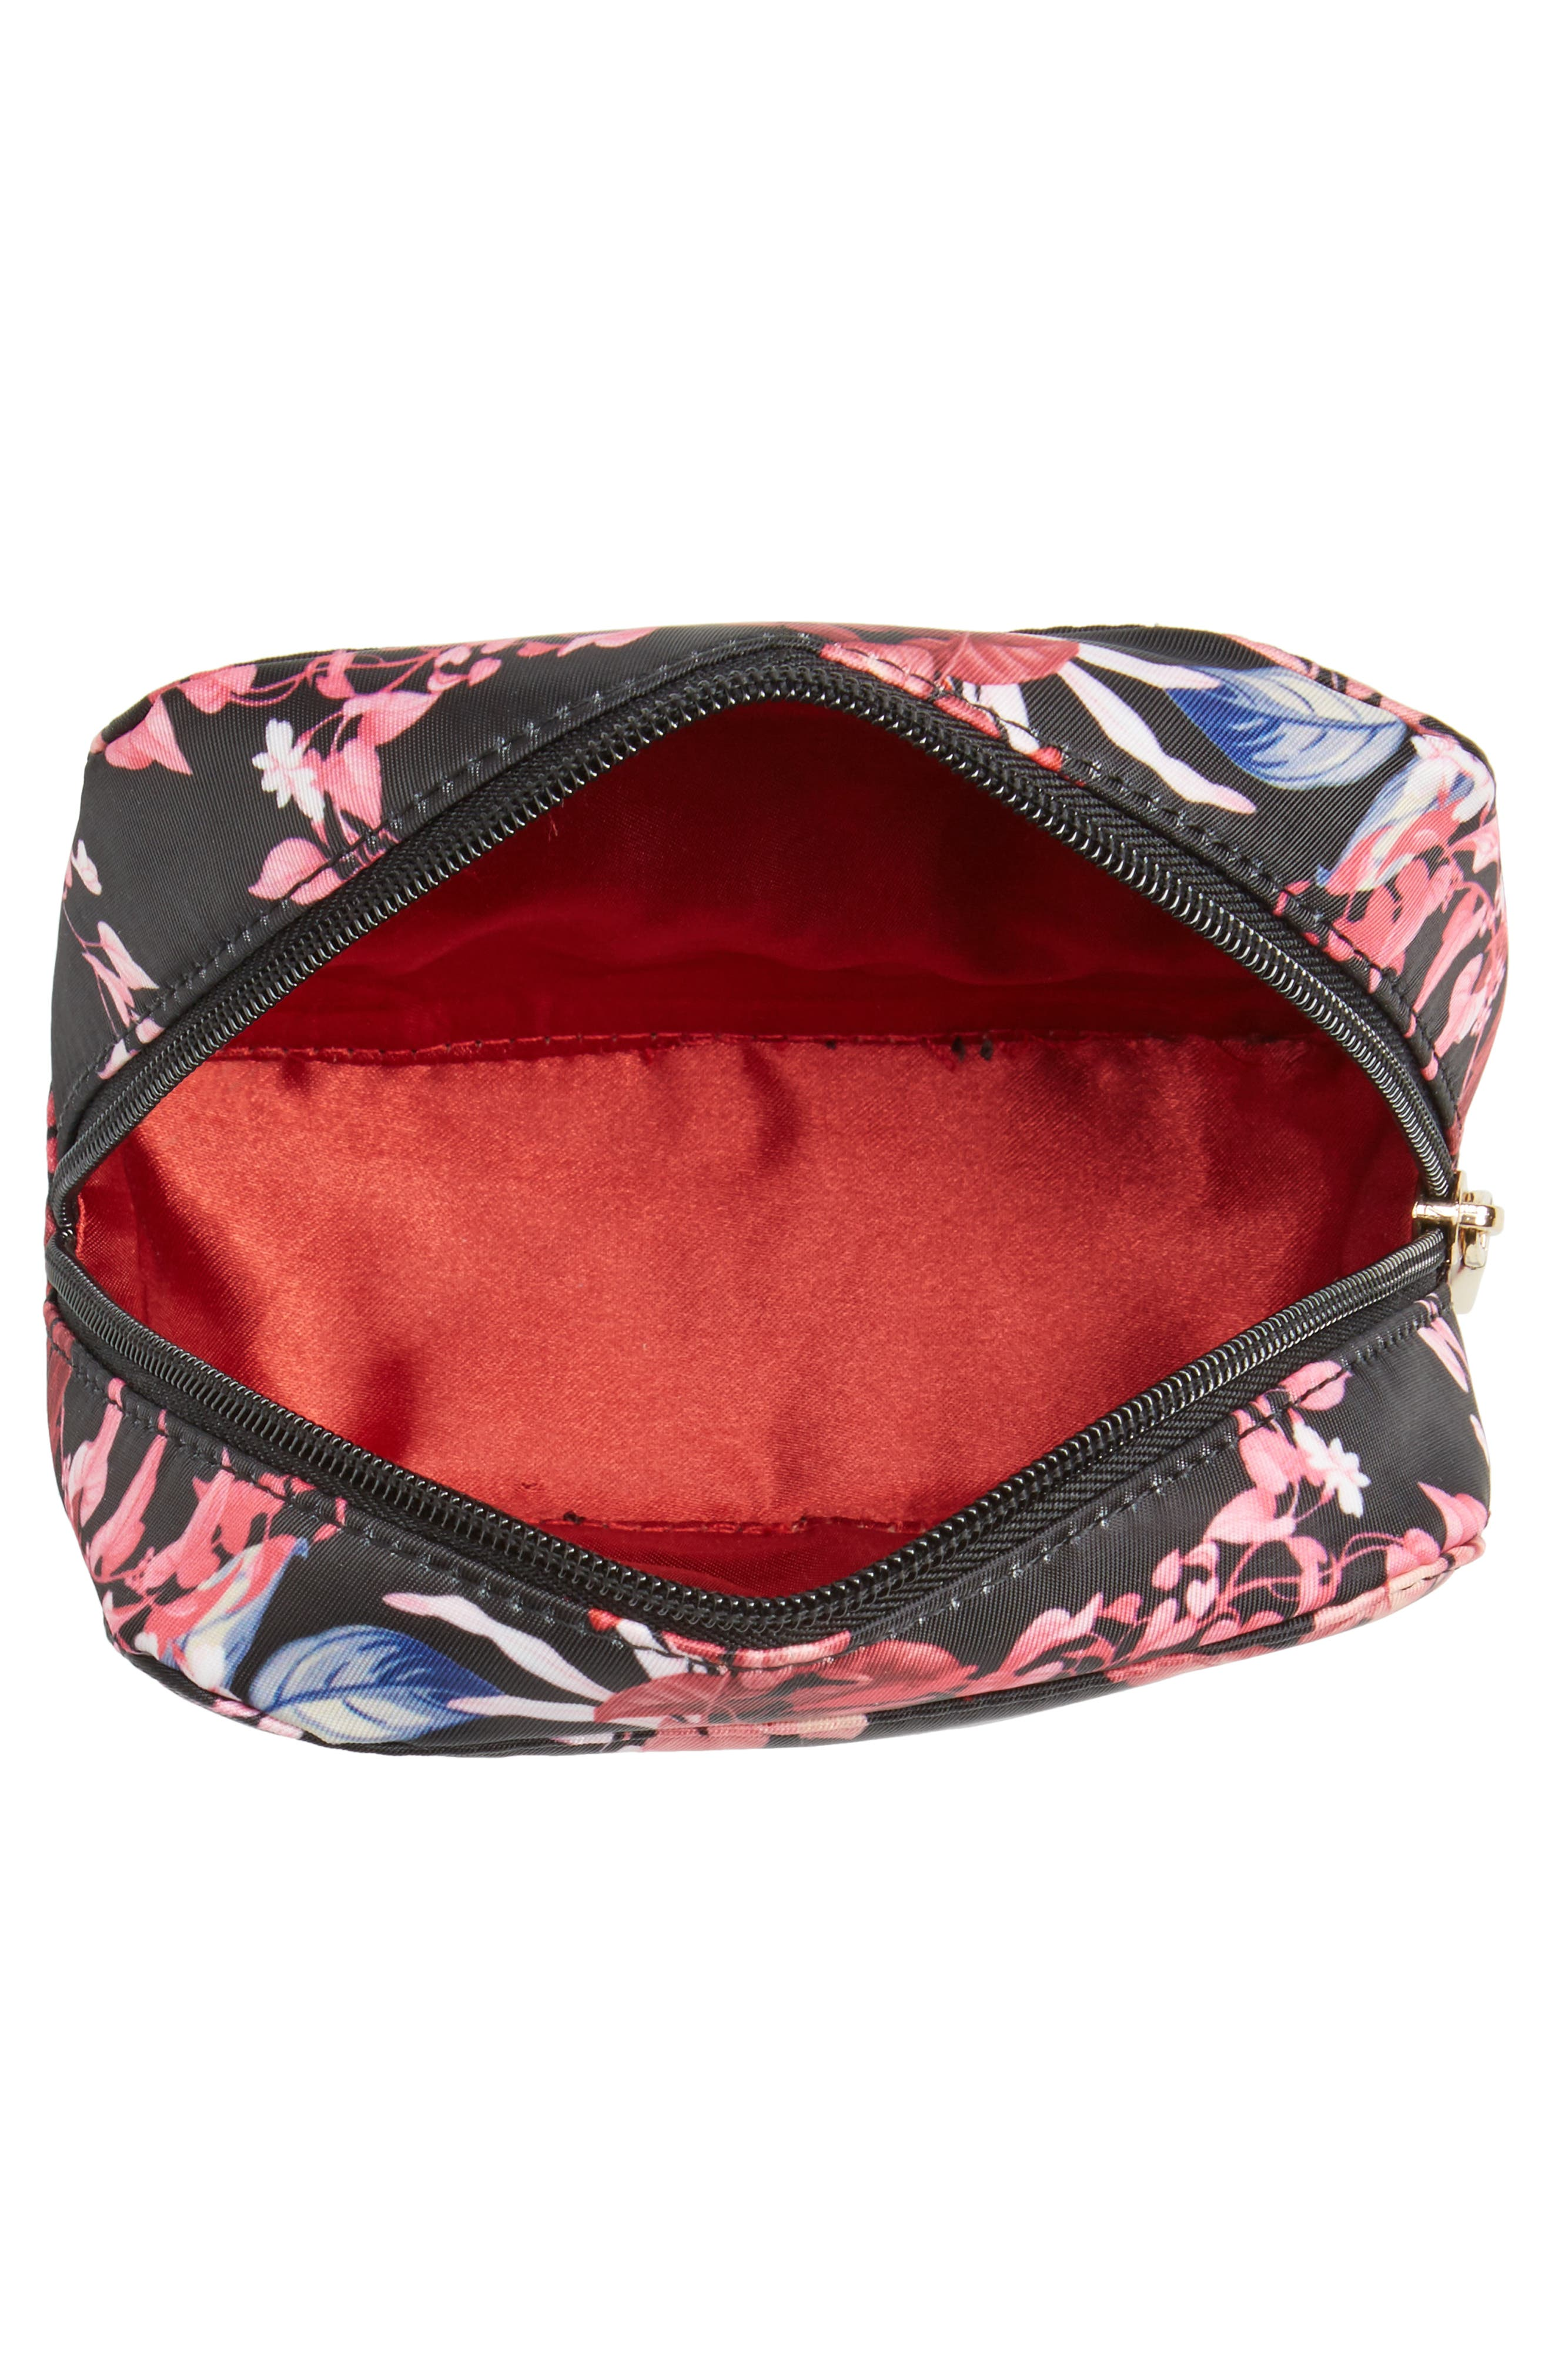 Up in the Air Cosmetics Case & Eye Mask,                             Alternate thumbnail 3, color,                             Fall Garden Part